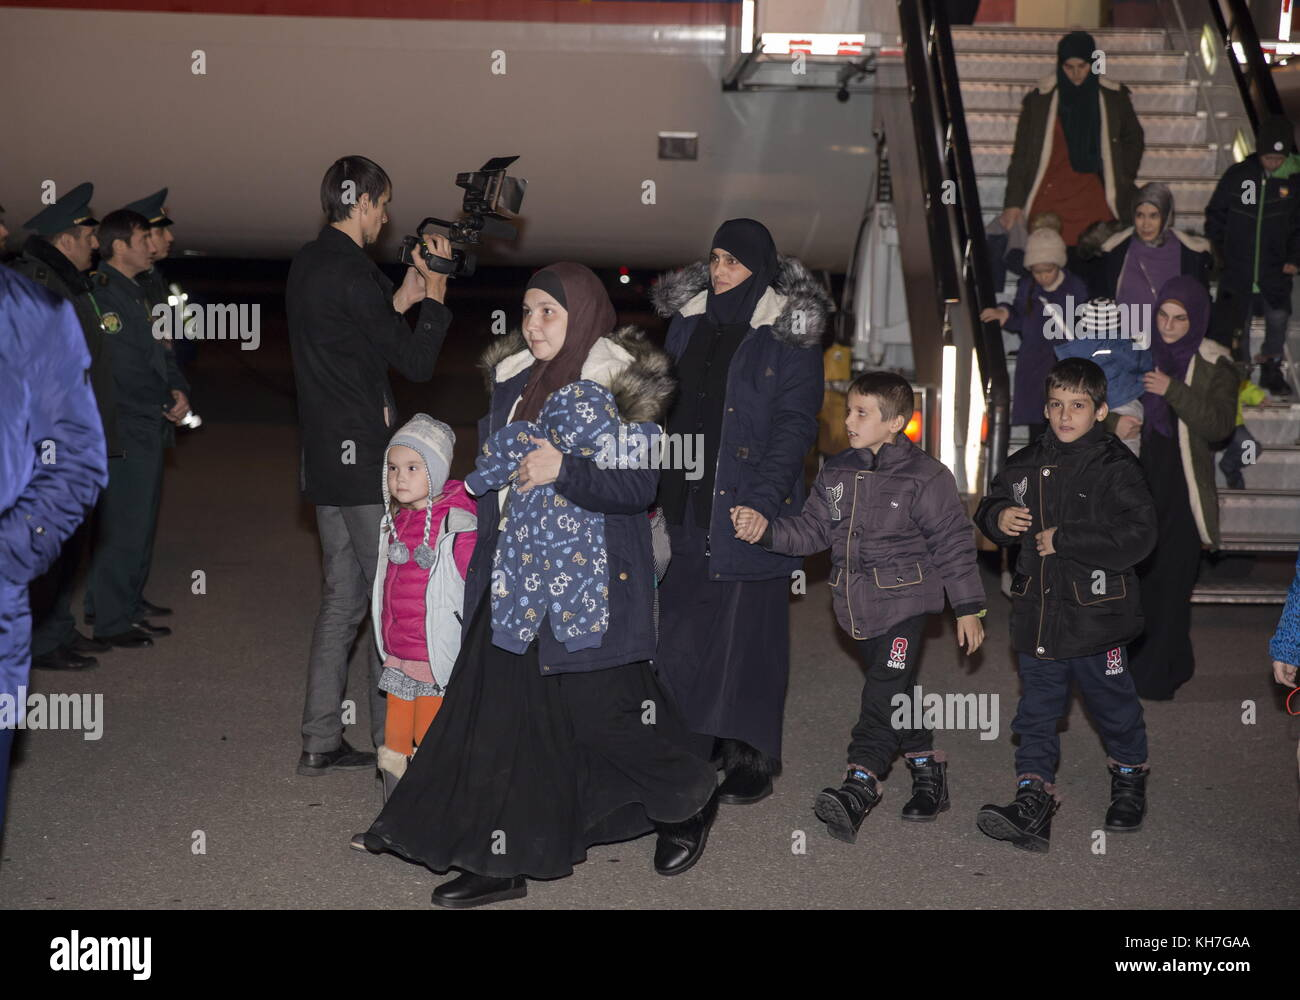 Grozny, Russia. 13th Nov, 2017. Women and children evacuated from Syria leave a plane as they arrive at Grozny Airport. - Stock Image